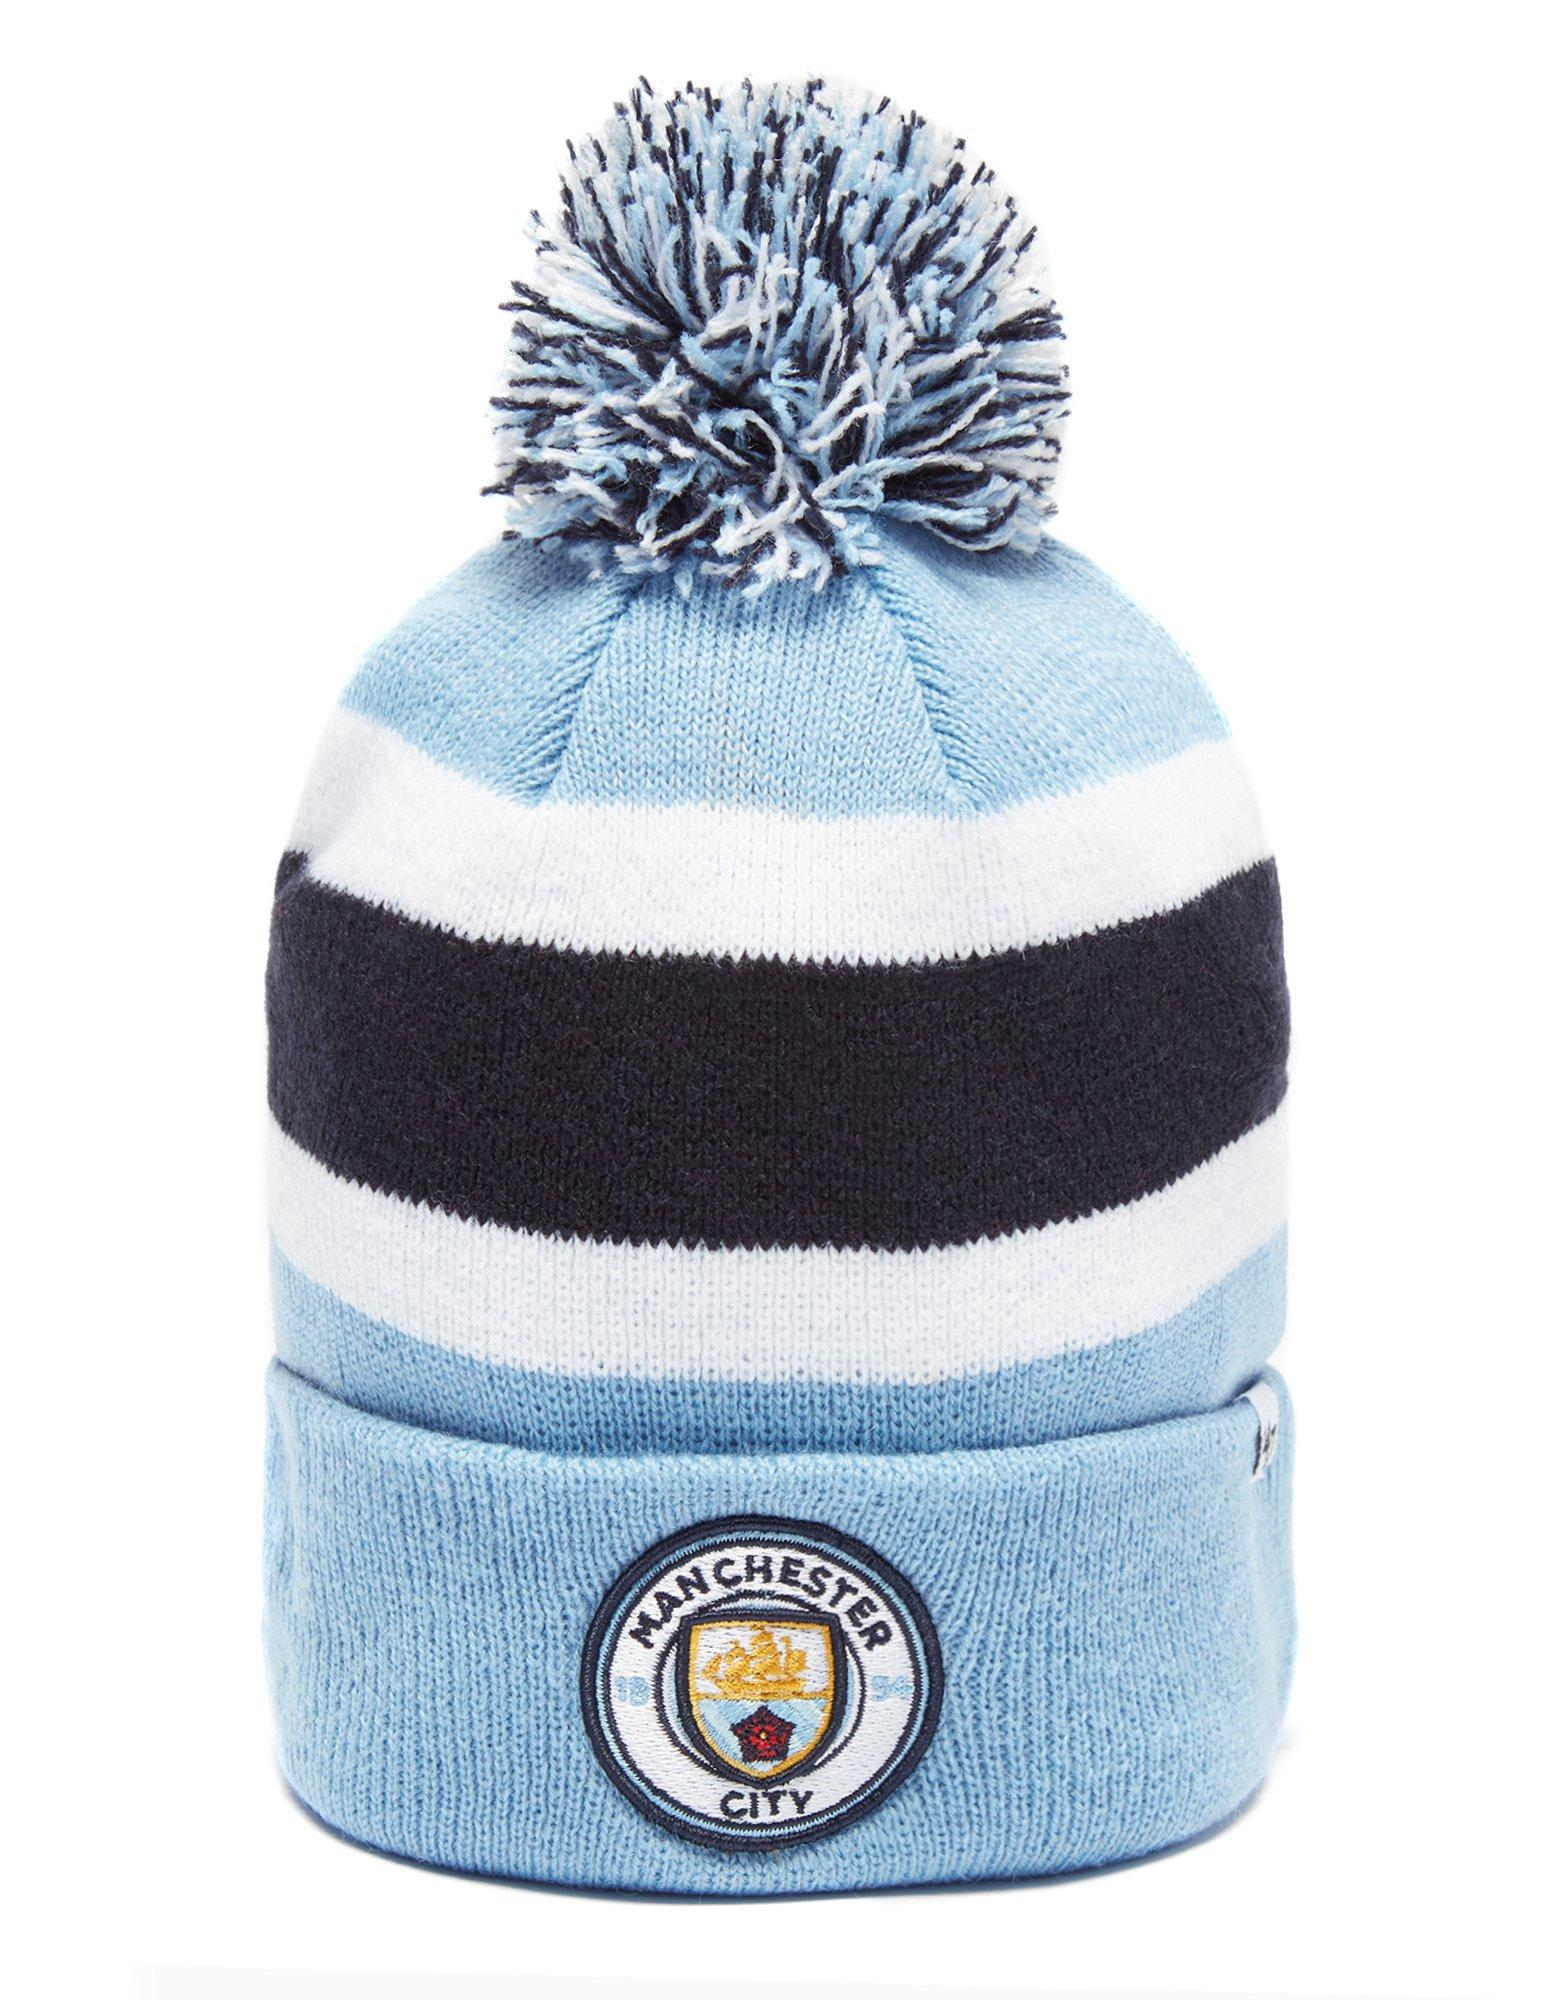 Lyst - 47 Brand Manchester City Fc Breakaway Beanie in Blue for Men 16f77e9acecd